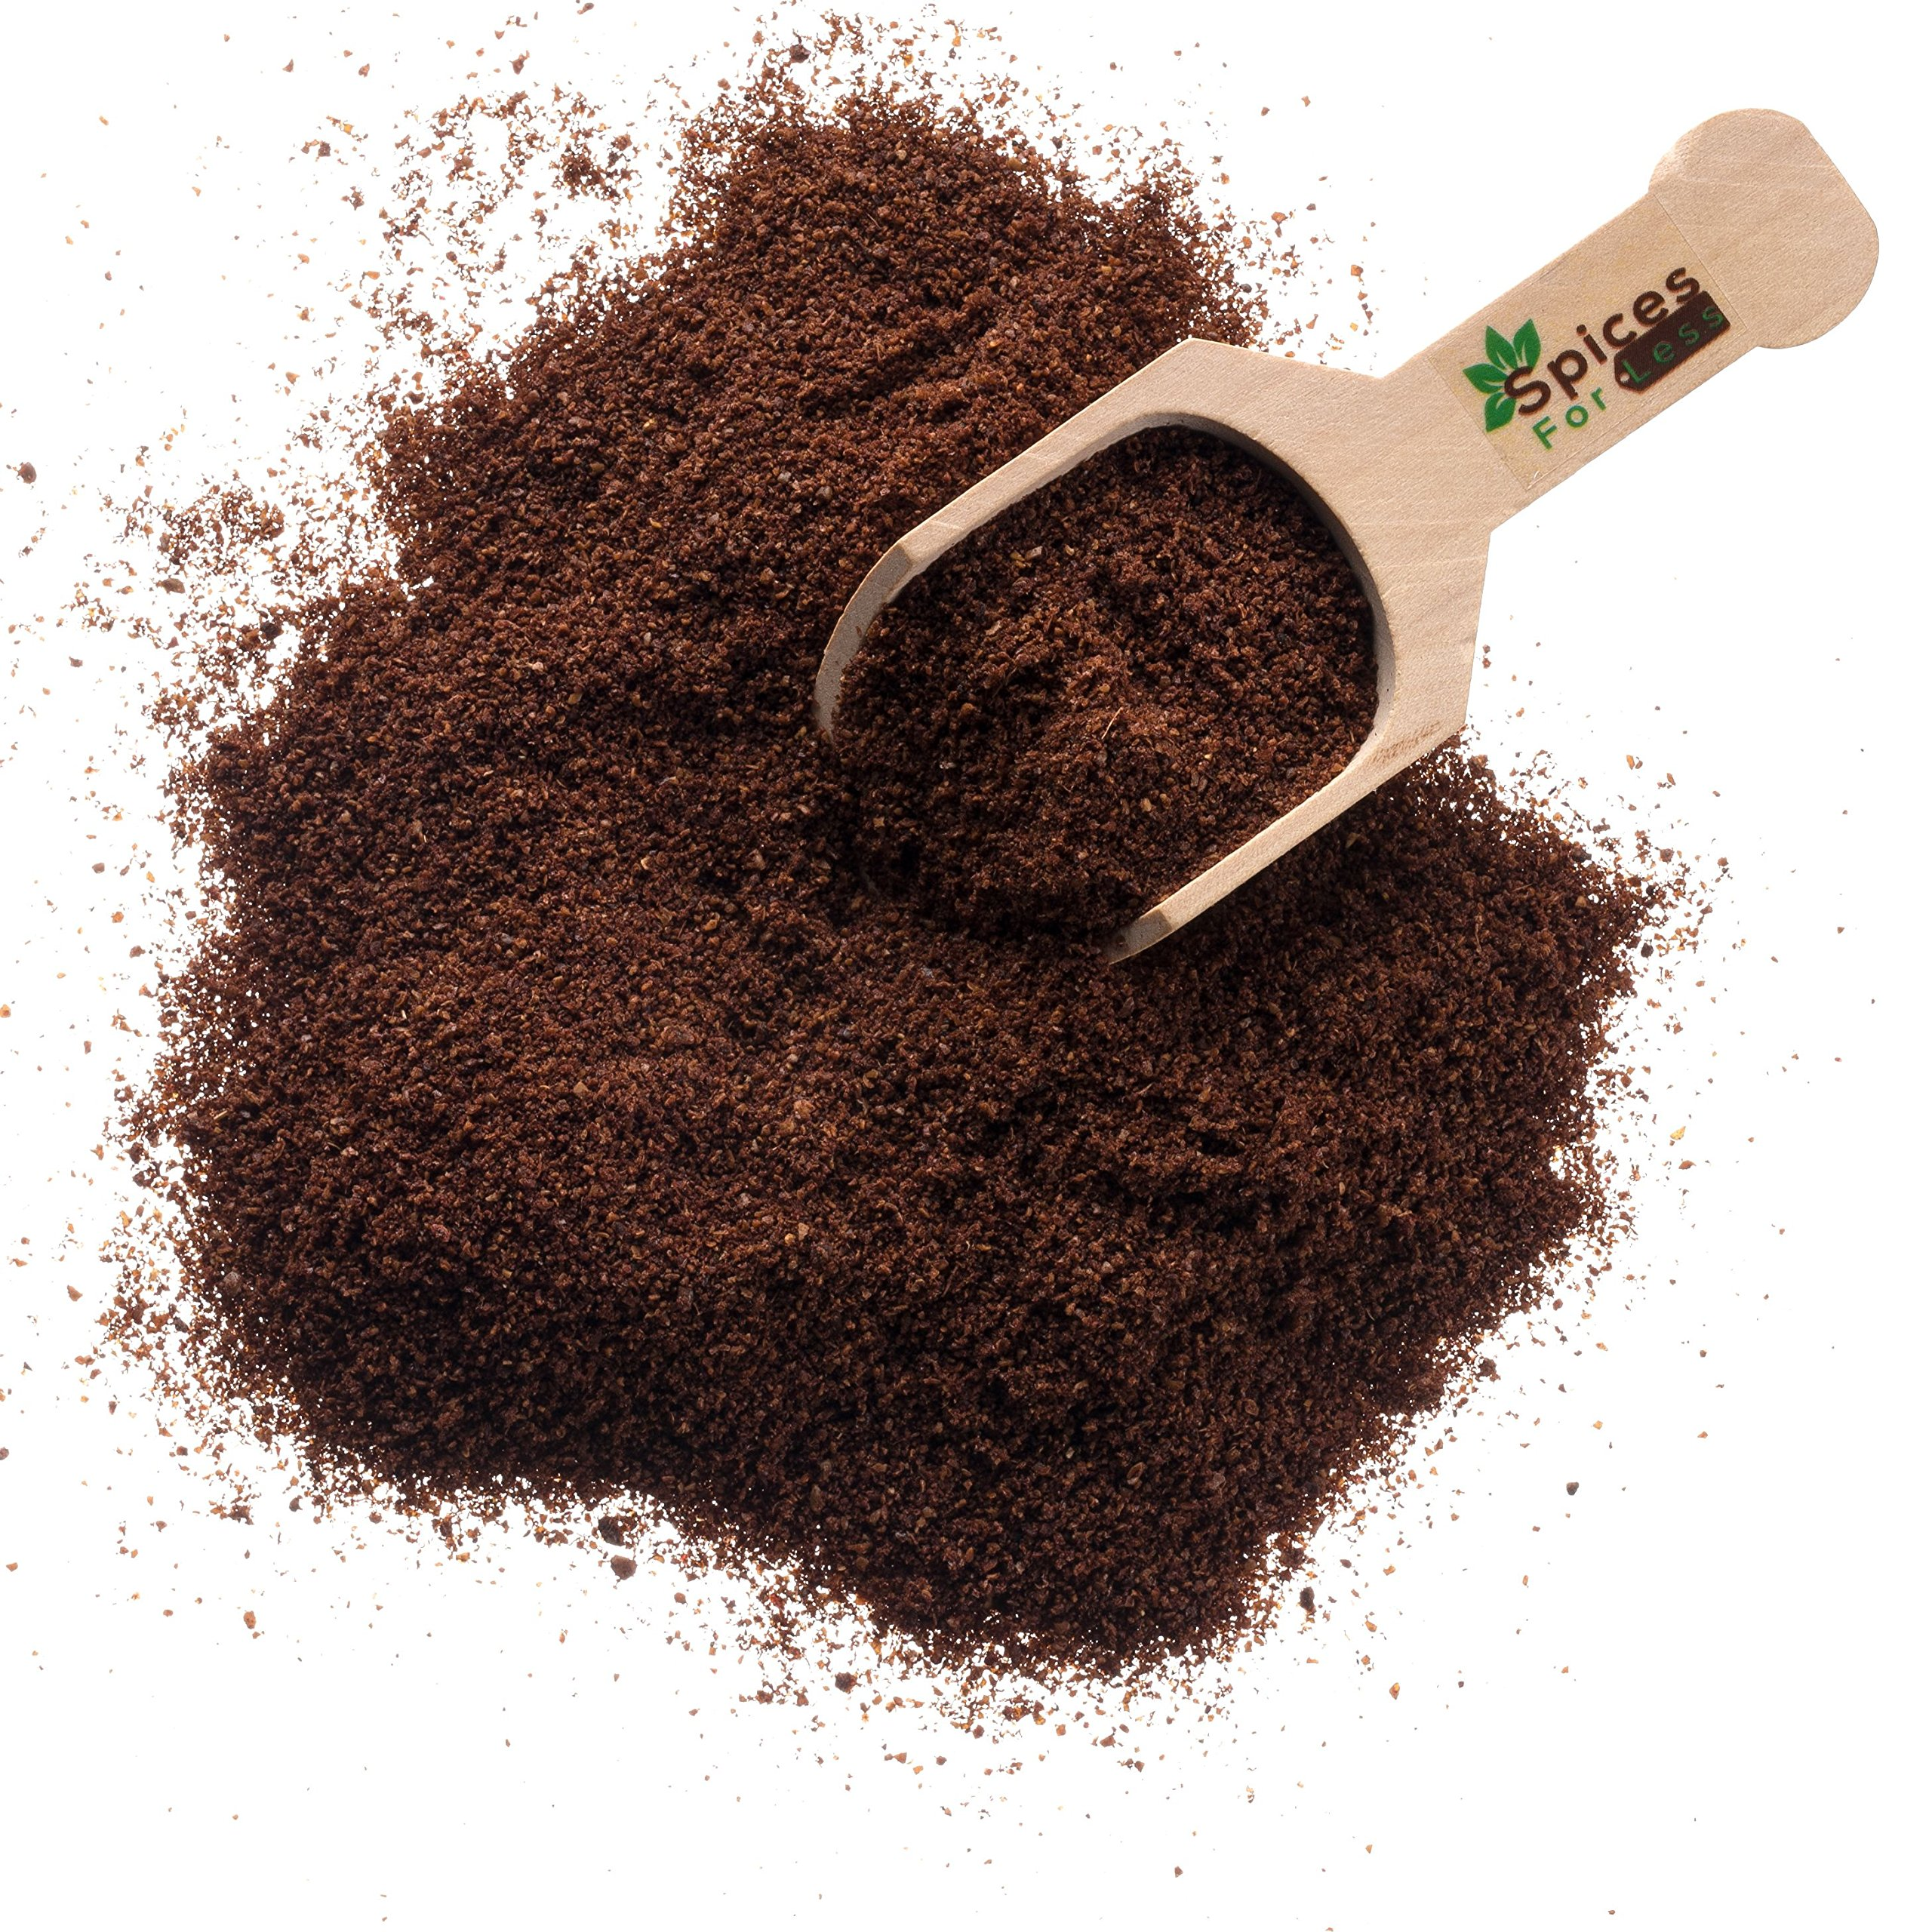 Sumac Powder - 4 oz Pouch